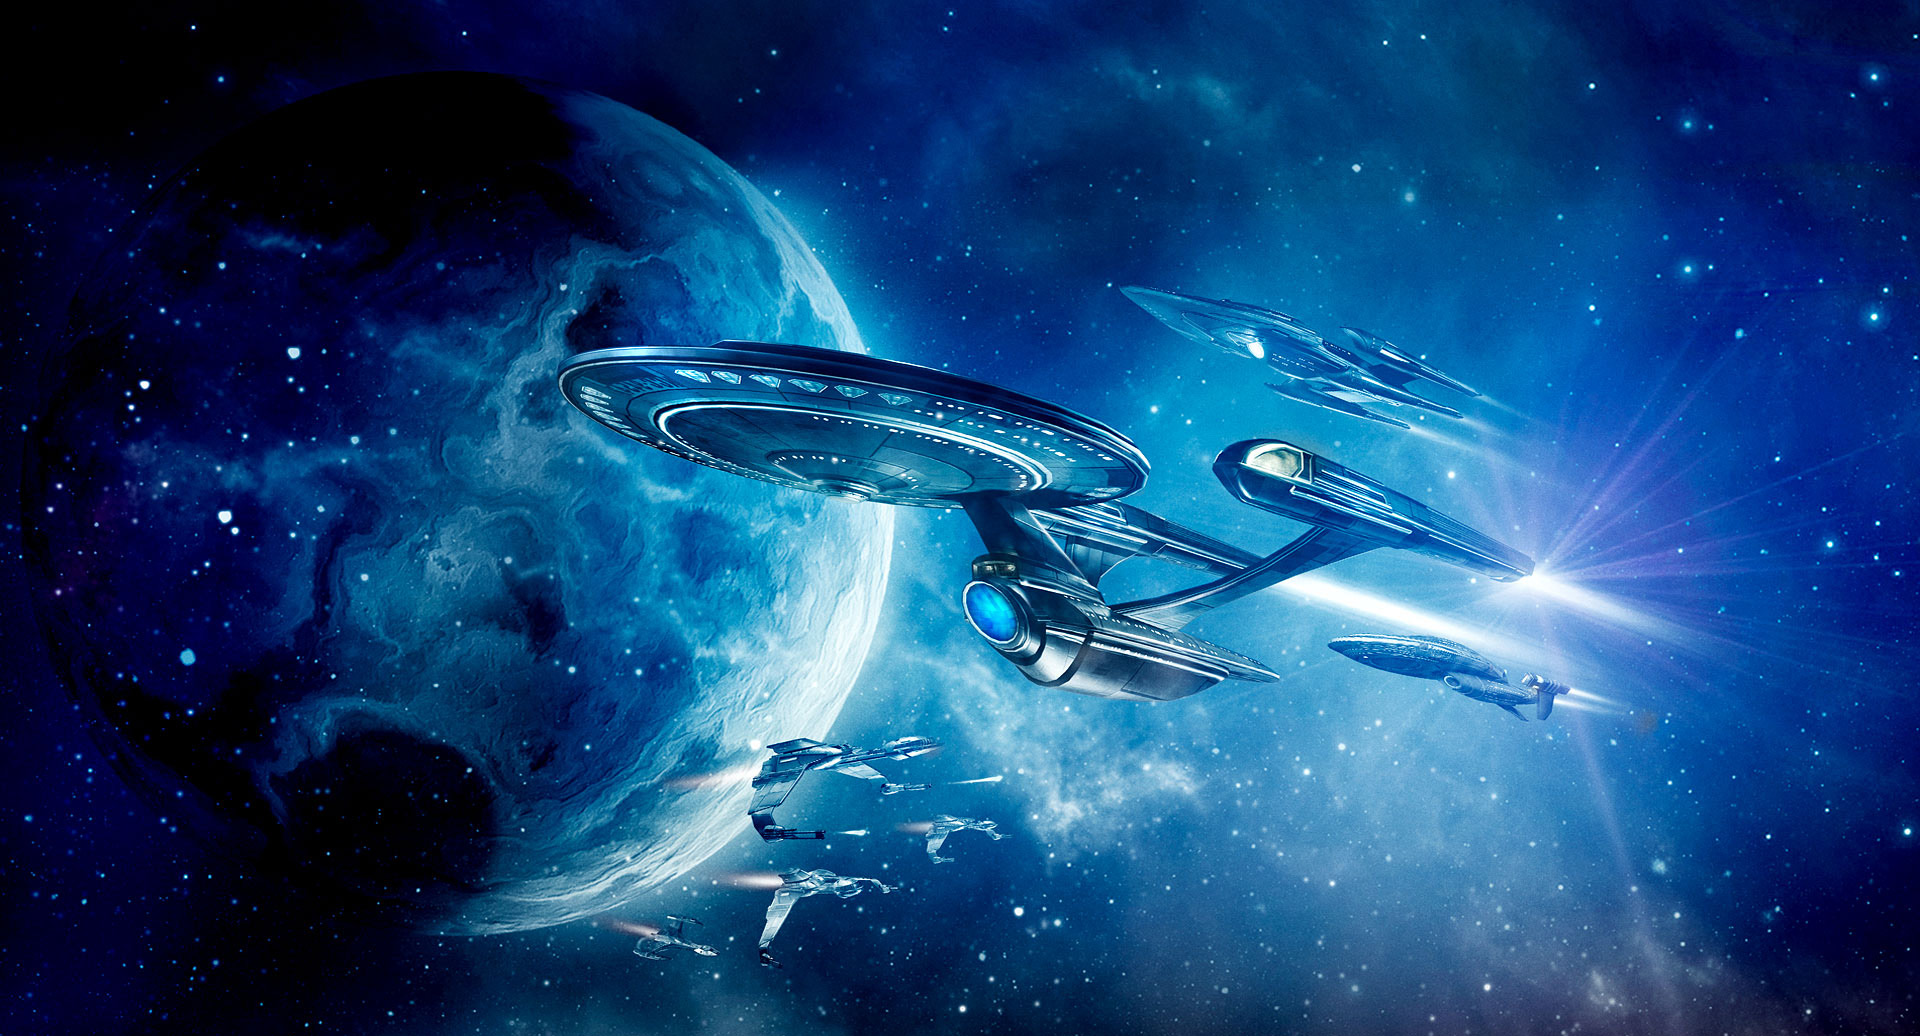 Star Trek Online Wallpapers Pictures to pin 1920x1036